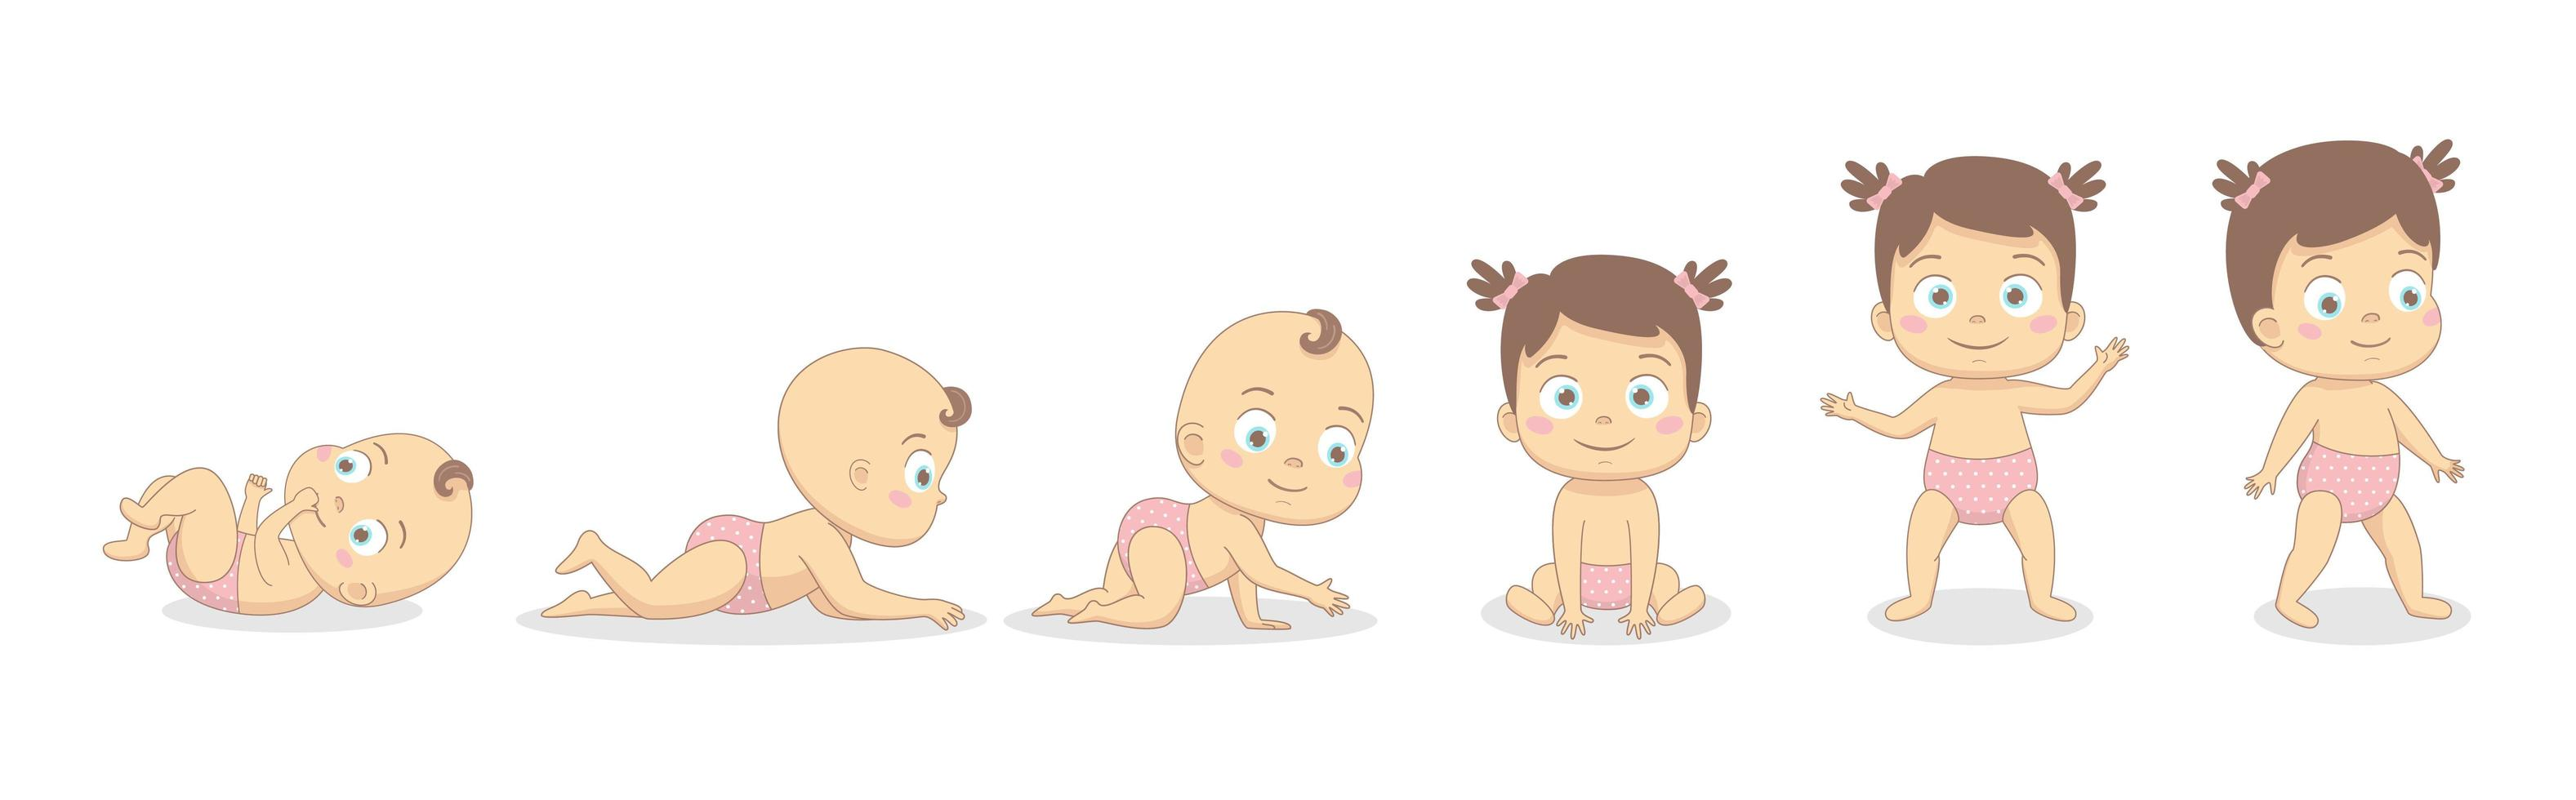 Baby girl growth process. vector